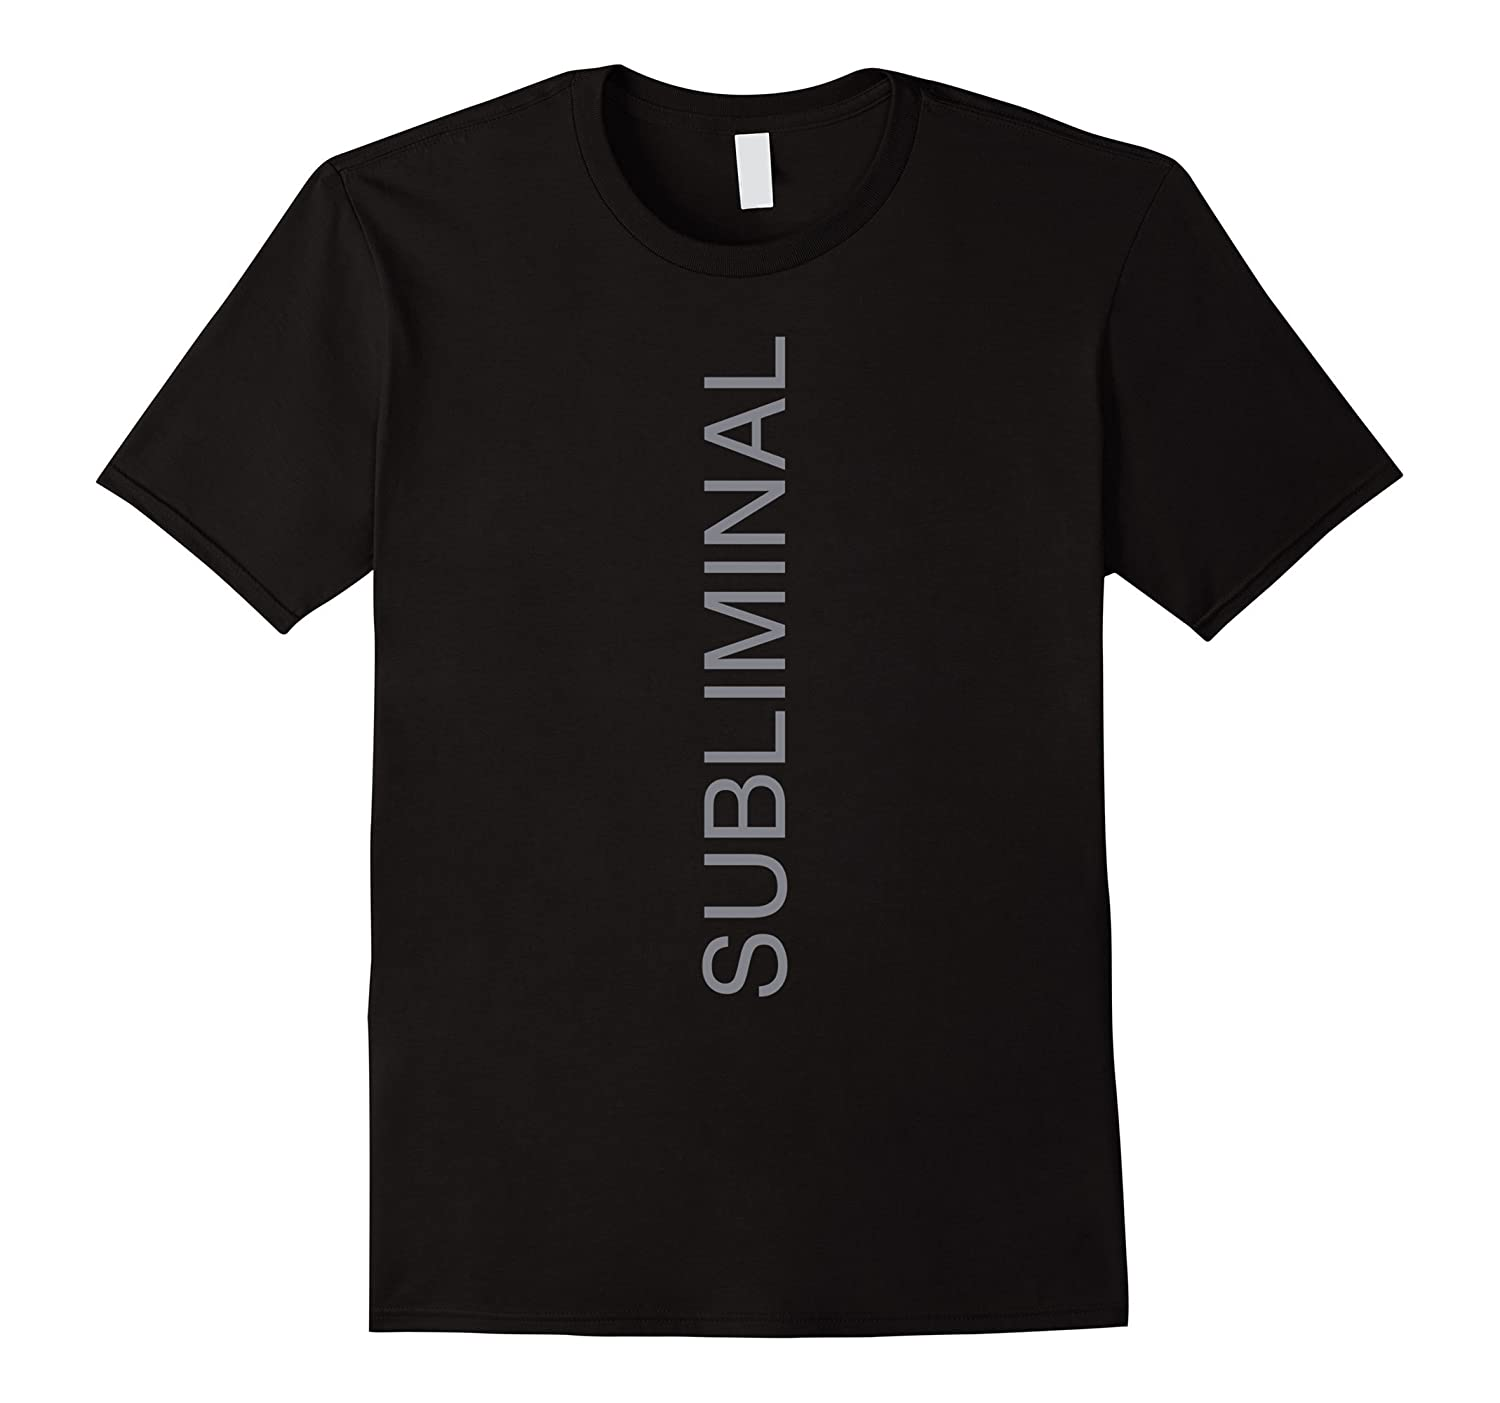 Subliminal Tie Printed Text Tee Shirt for Men   Women-CL – Colamaga ff4f5a182